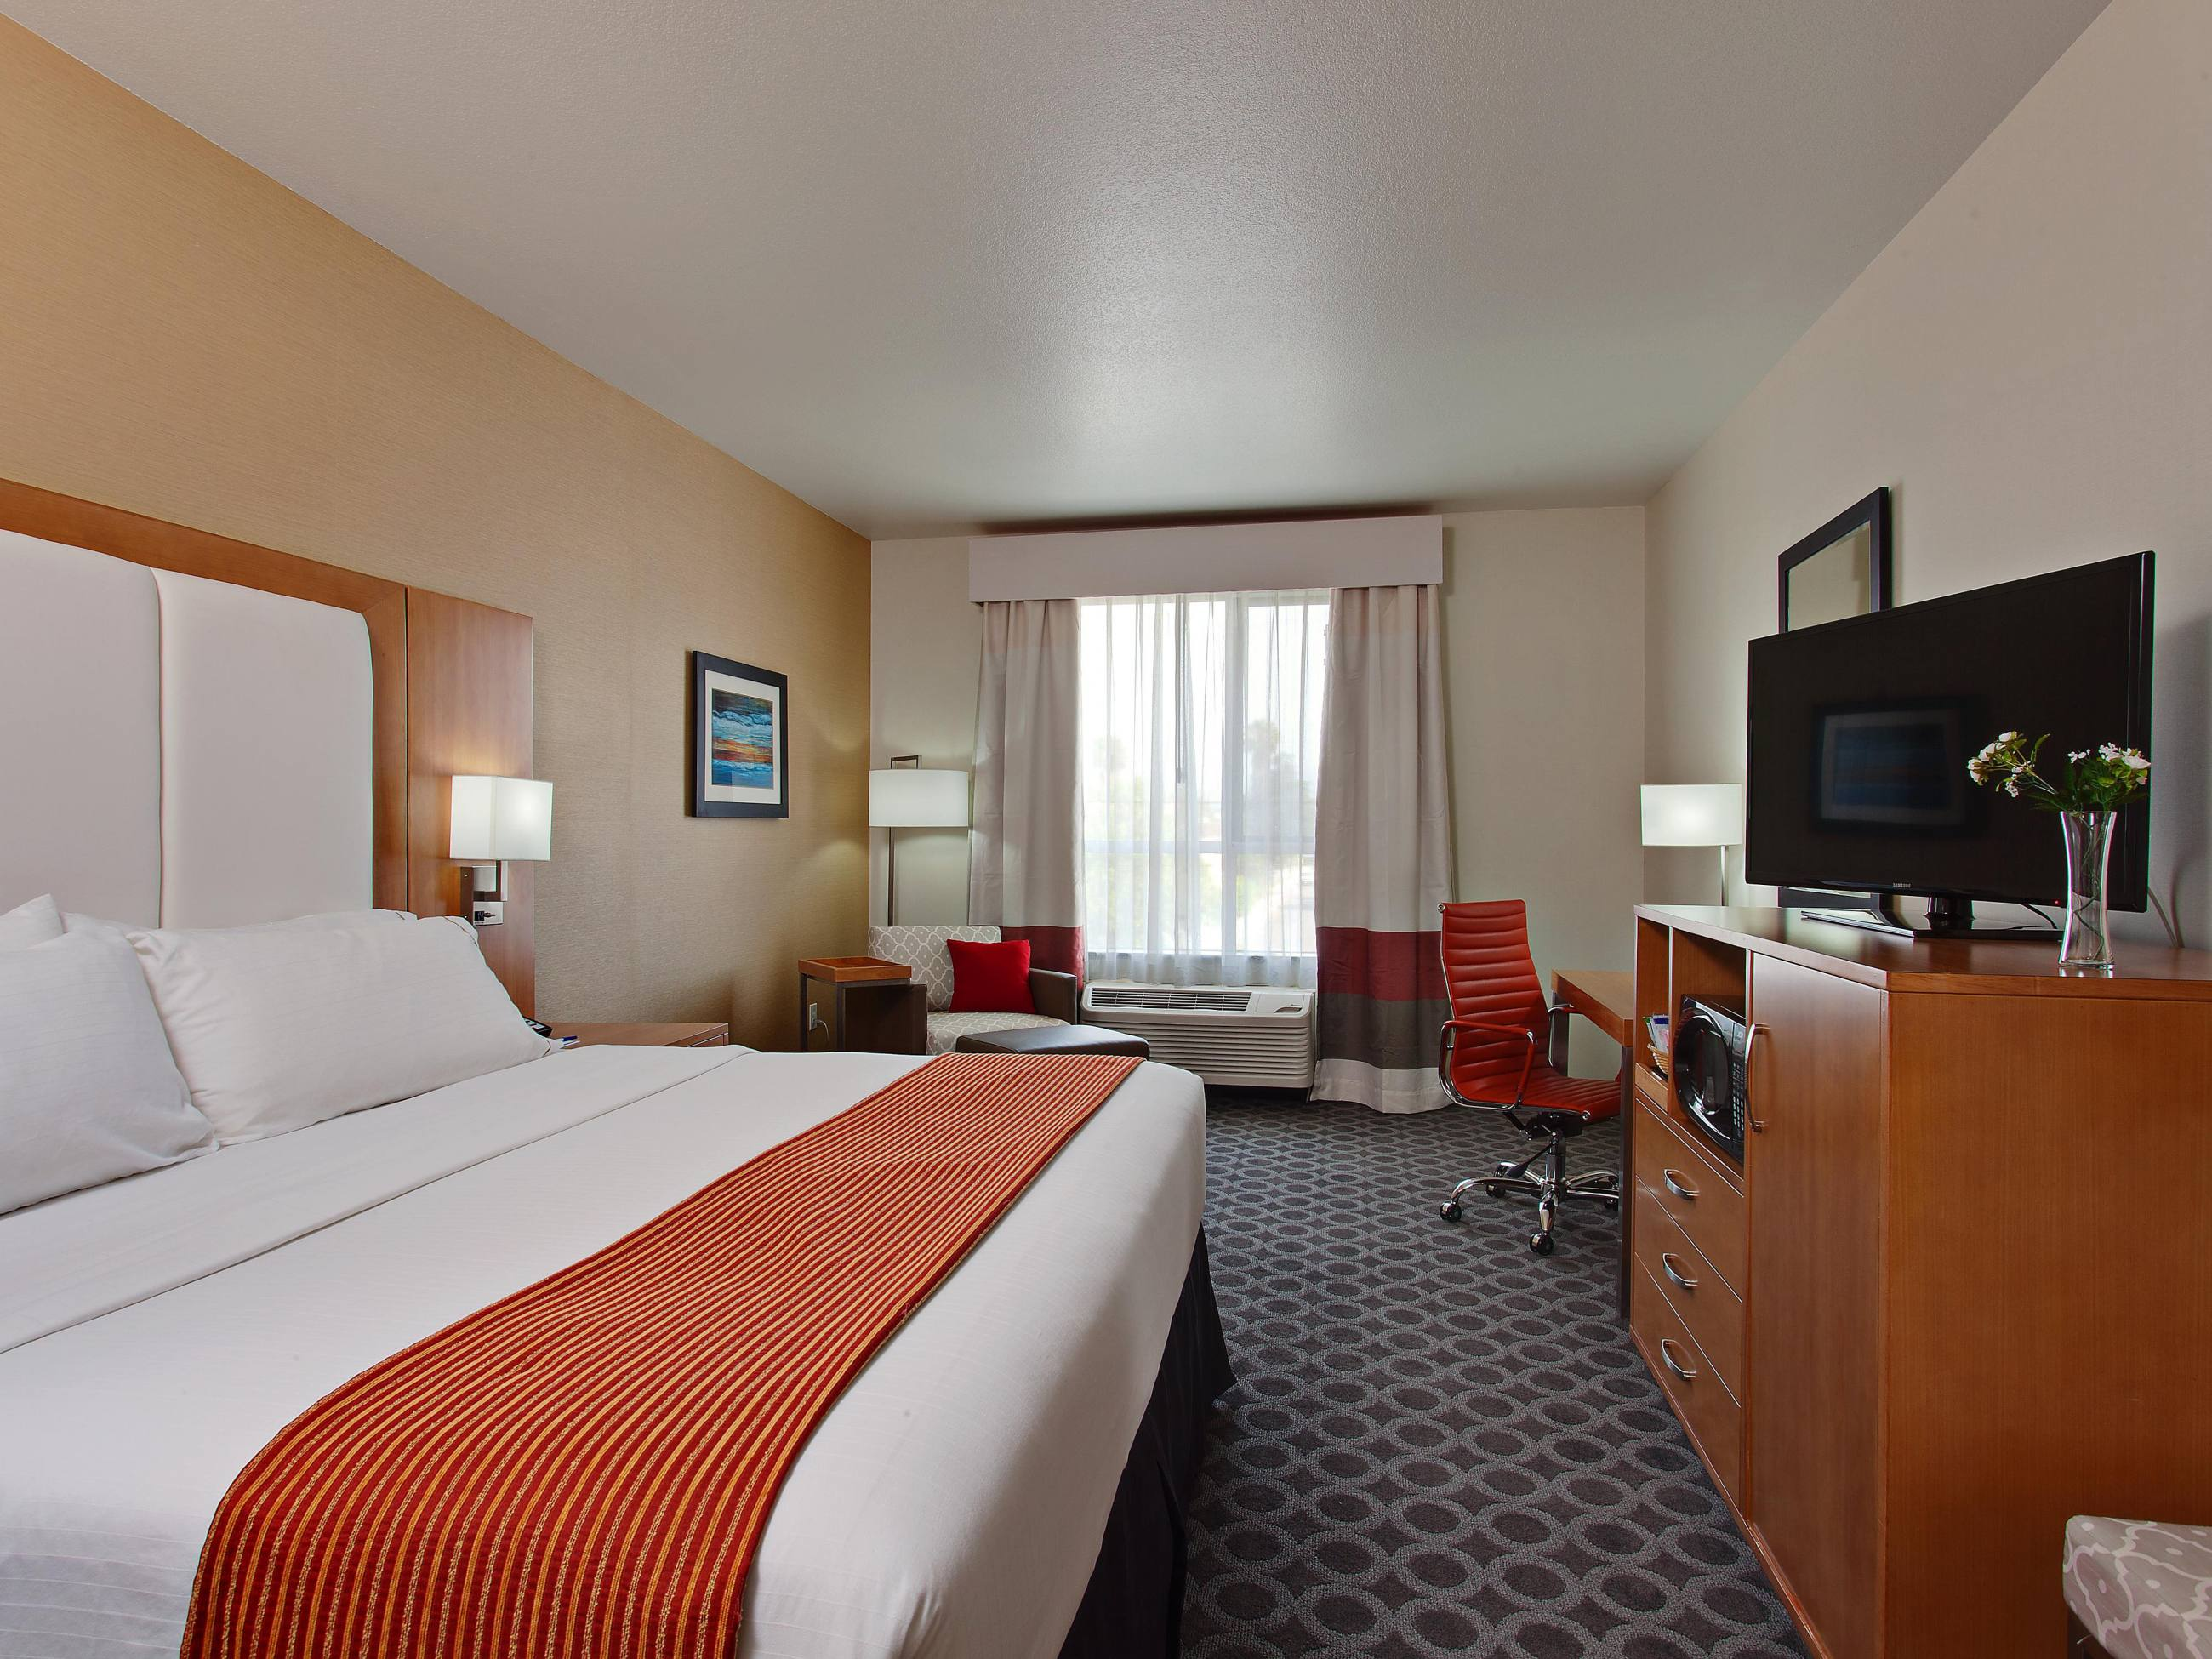 King Bed Guest Room at Holiday Inn Express North Hollywood - Burbank Area